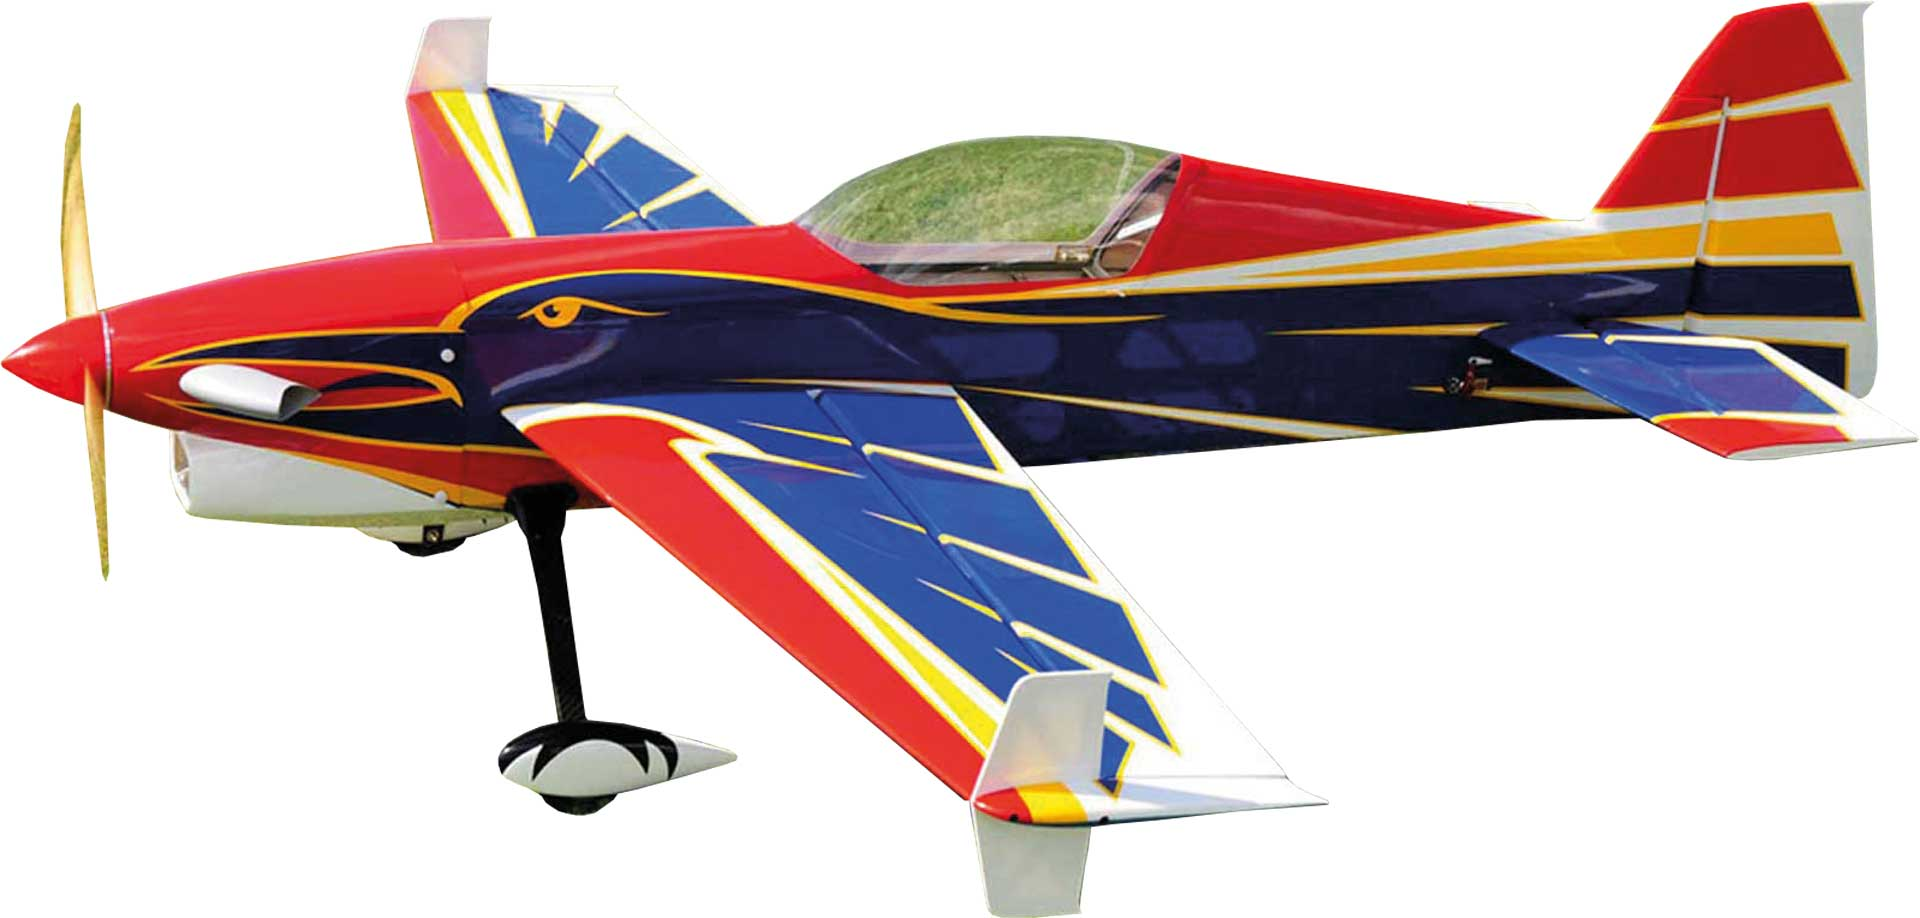 "EXTREMEFLIGHT-RC TURBO RAVEN EXP 69"" ARF ROT/BLAU"